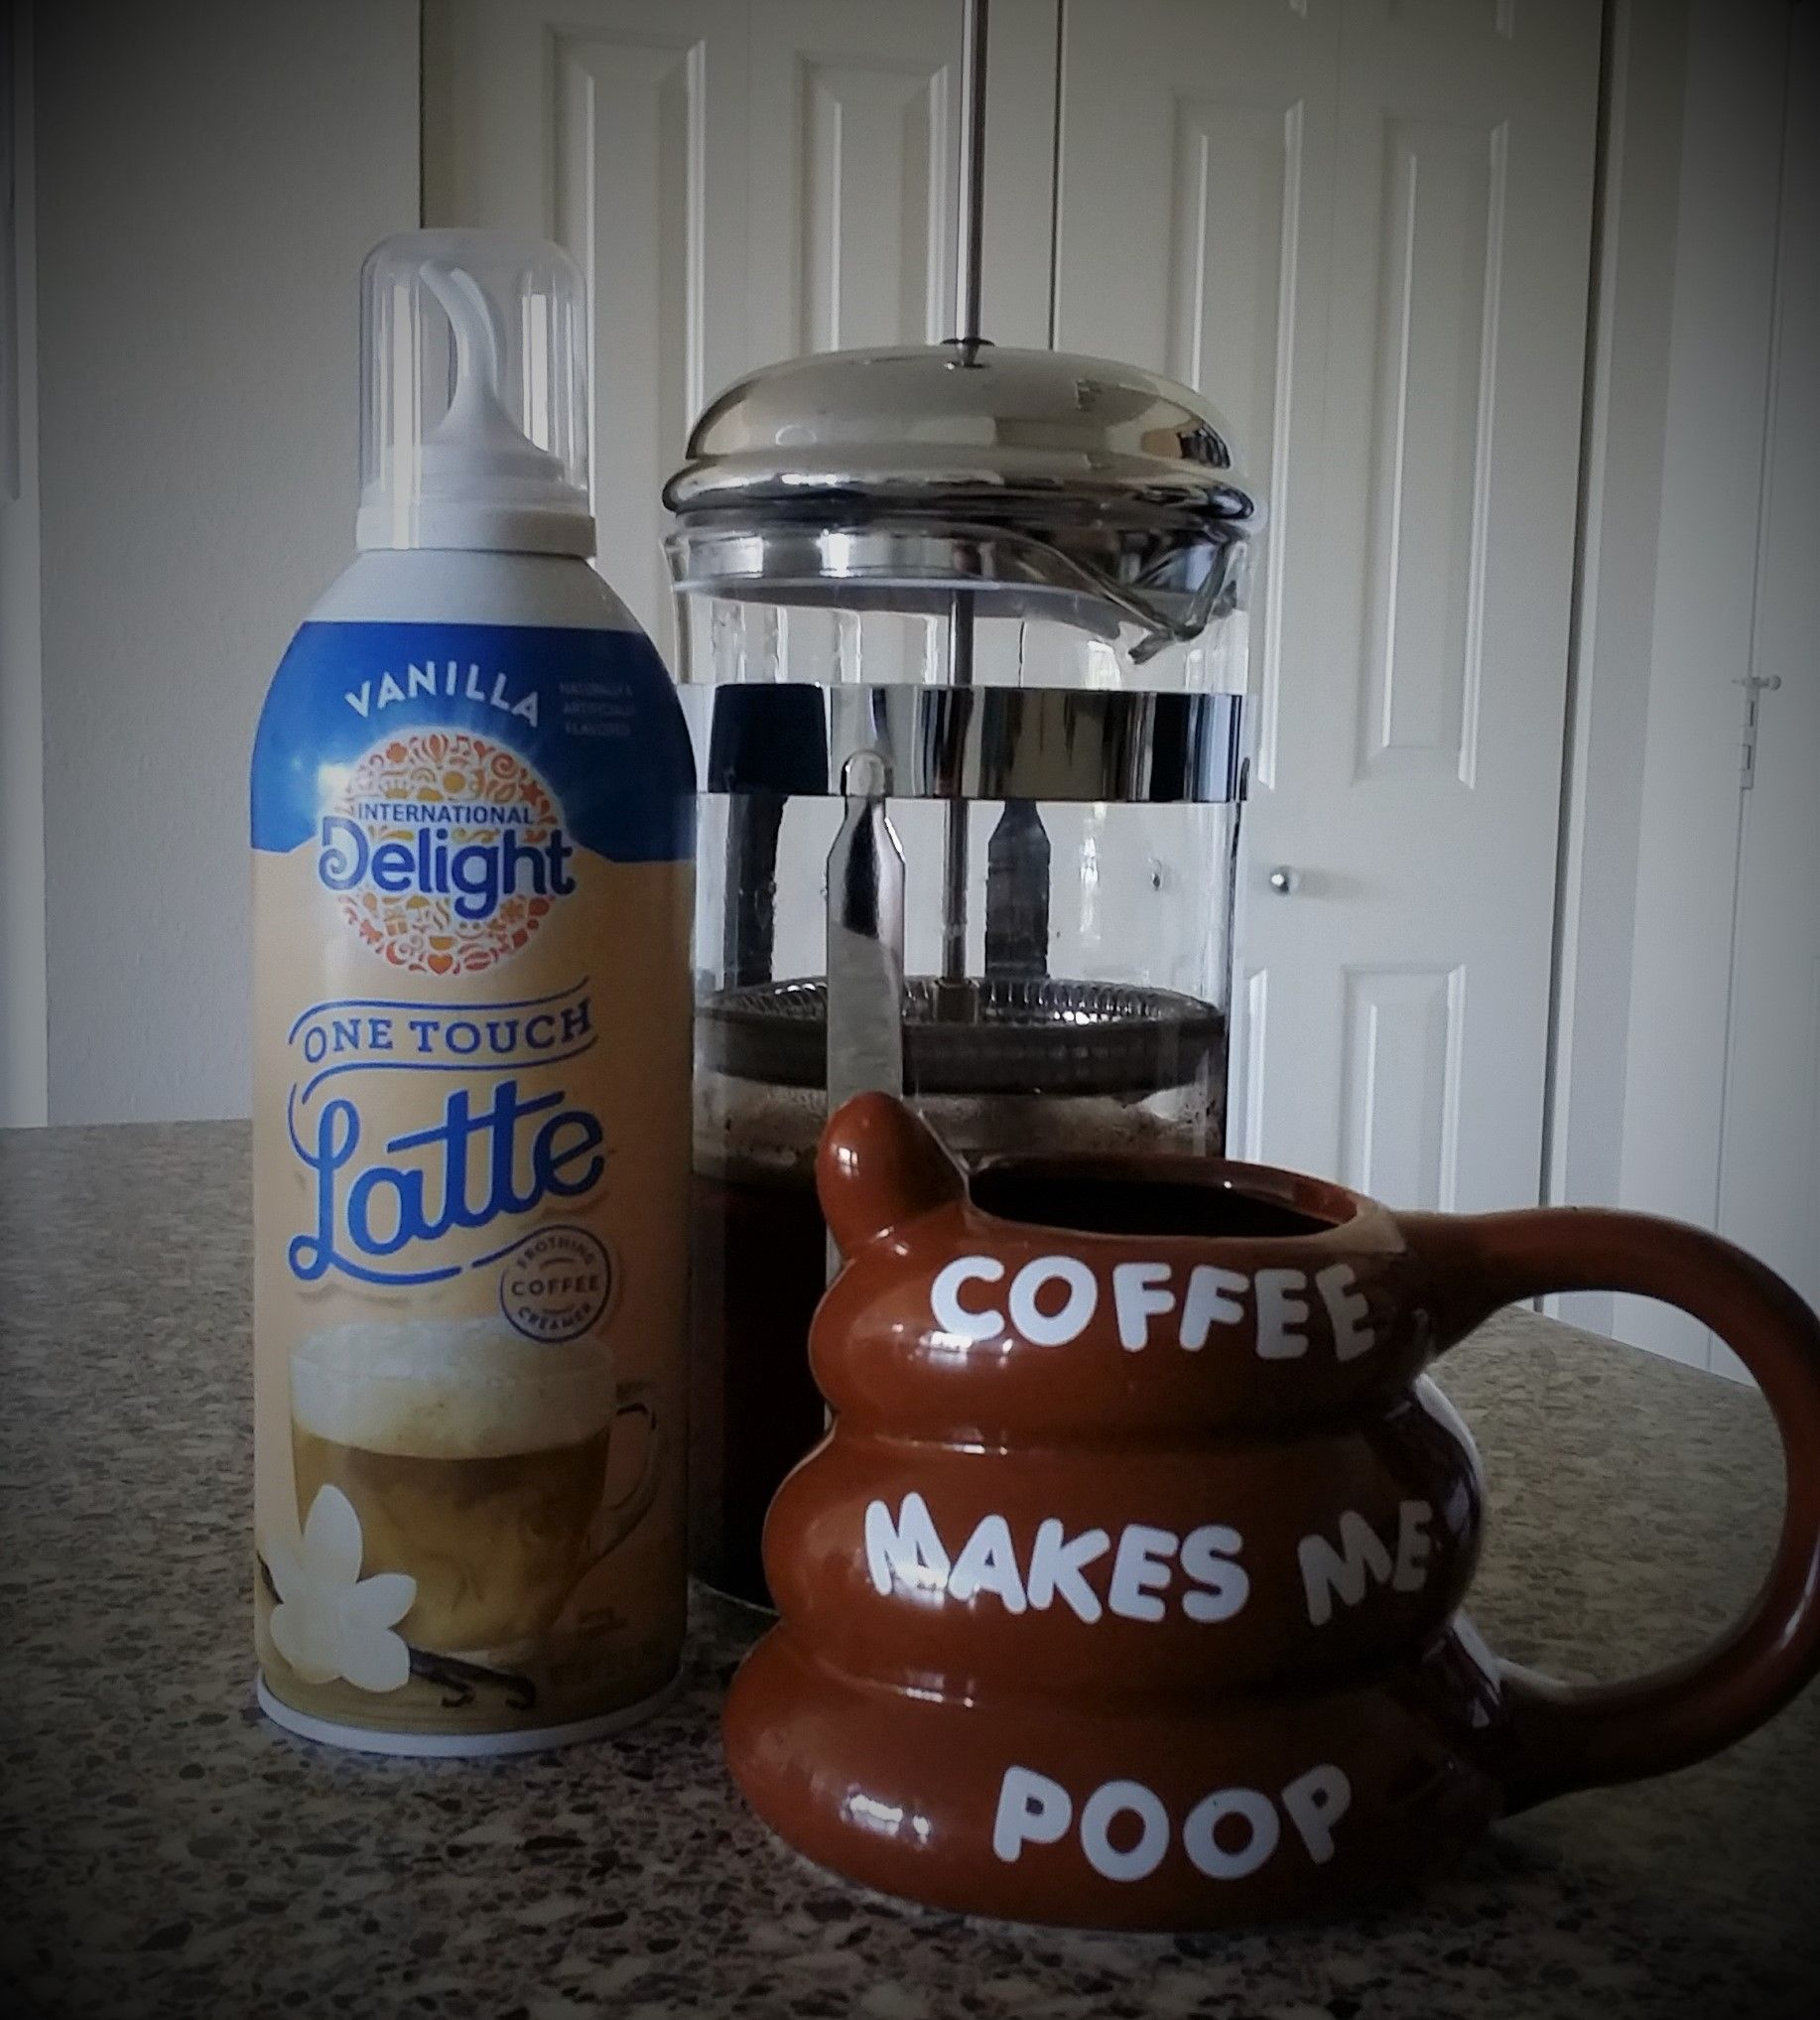 Made A One Touch Vanilla Latte At Home, With International